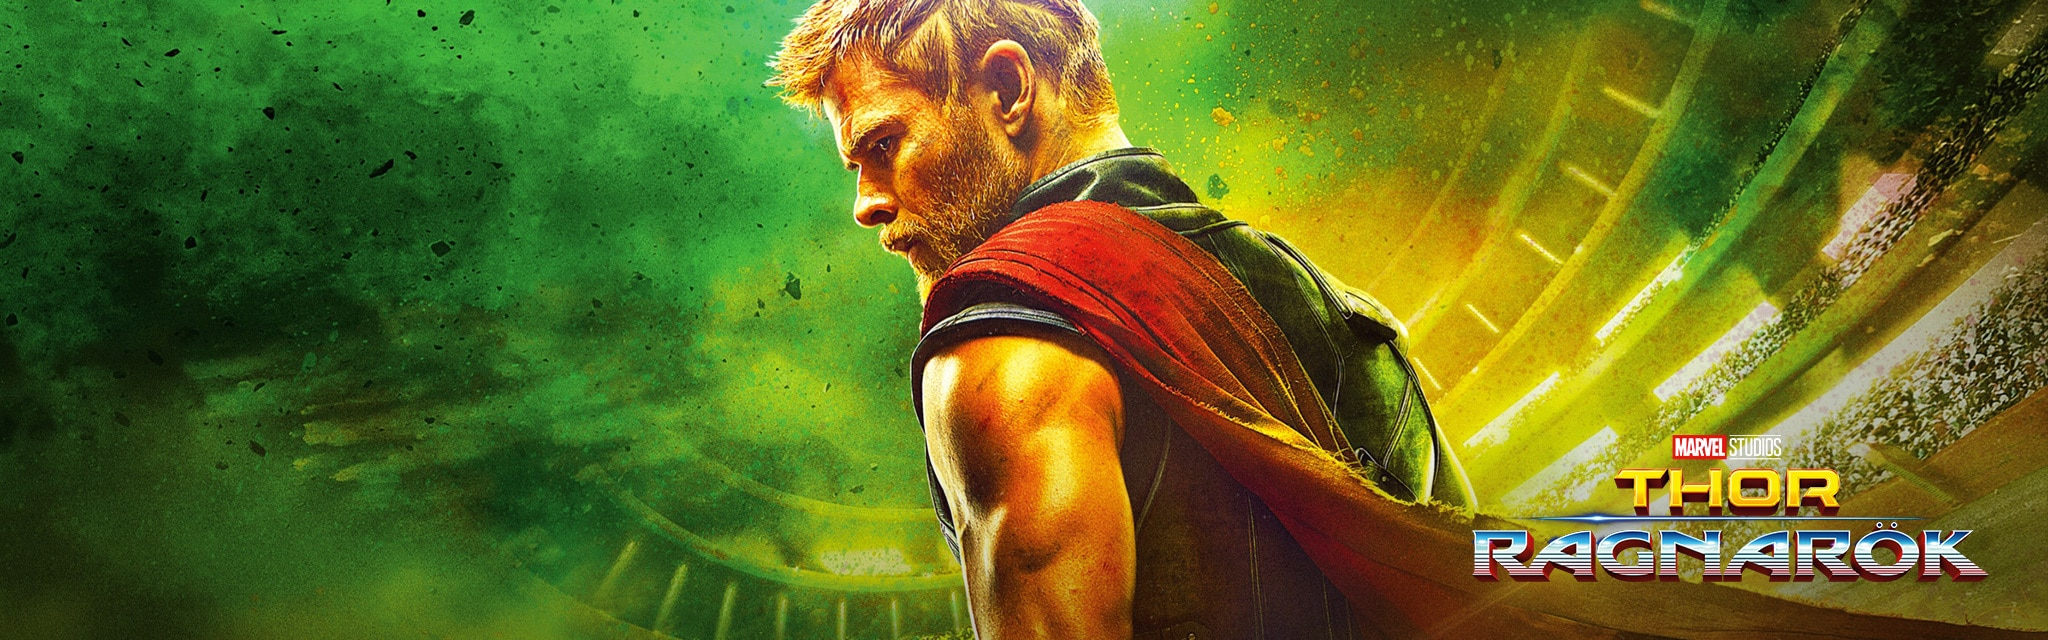 Thor: Ragnarok - In Cinemas Now - Hero